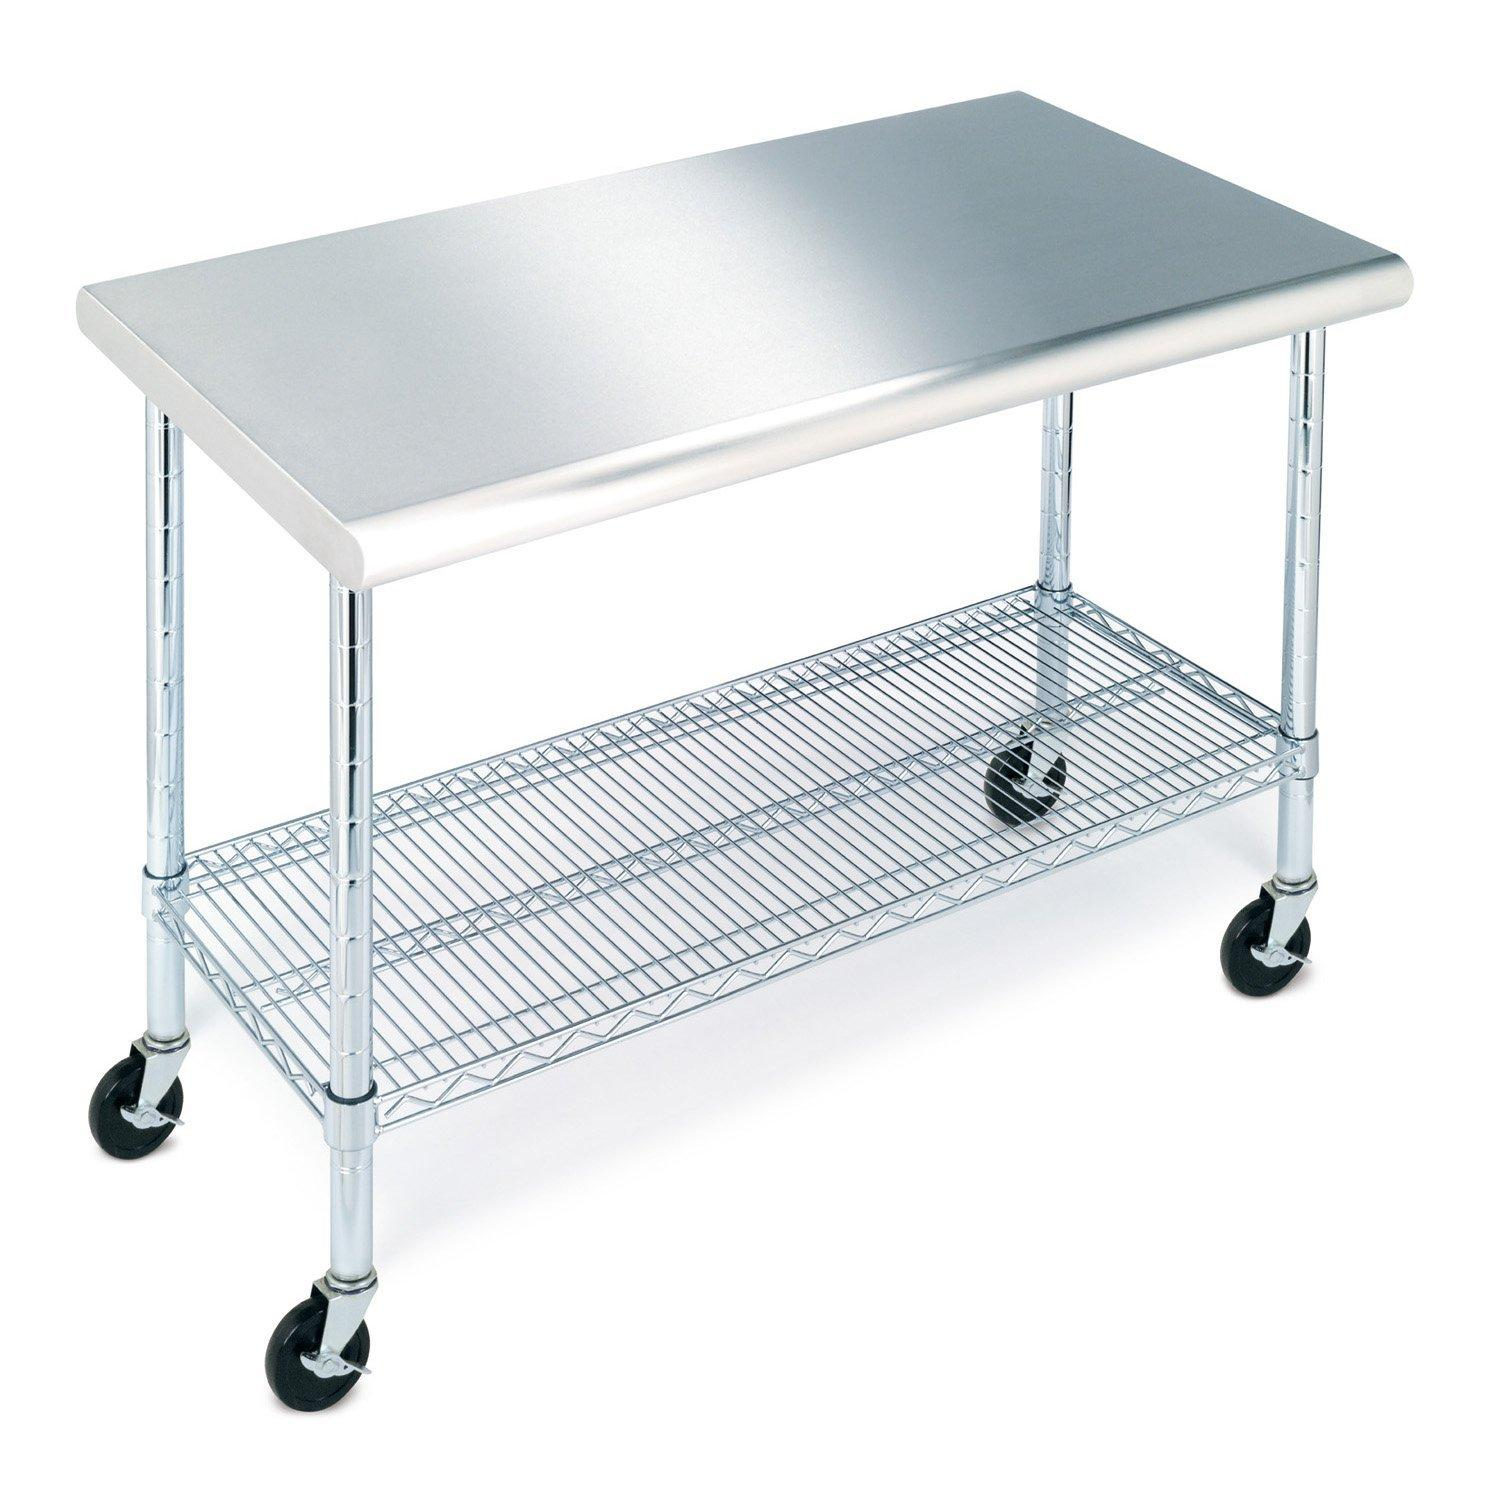 Amazoncom Seville Classics SHEWH Commercial NSF Stainless - Stainless steel work table on casters